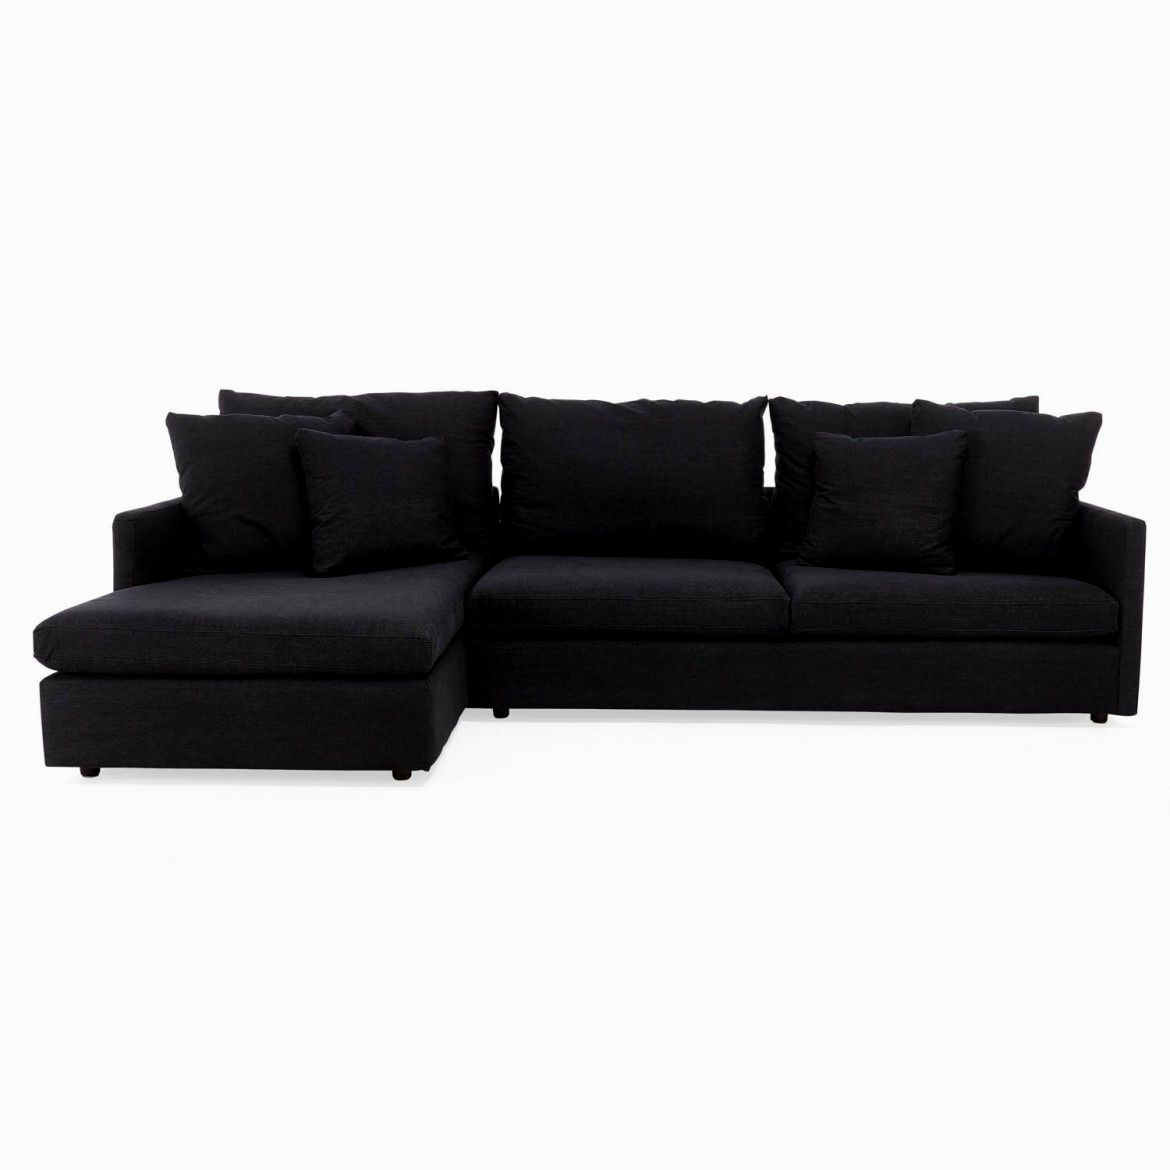 cute sectional sofas cheap décor-Latest Sectional sofas Cheap Inspiration